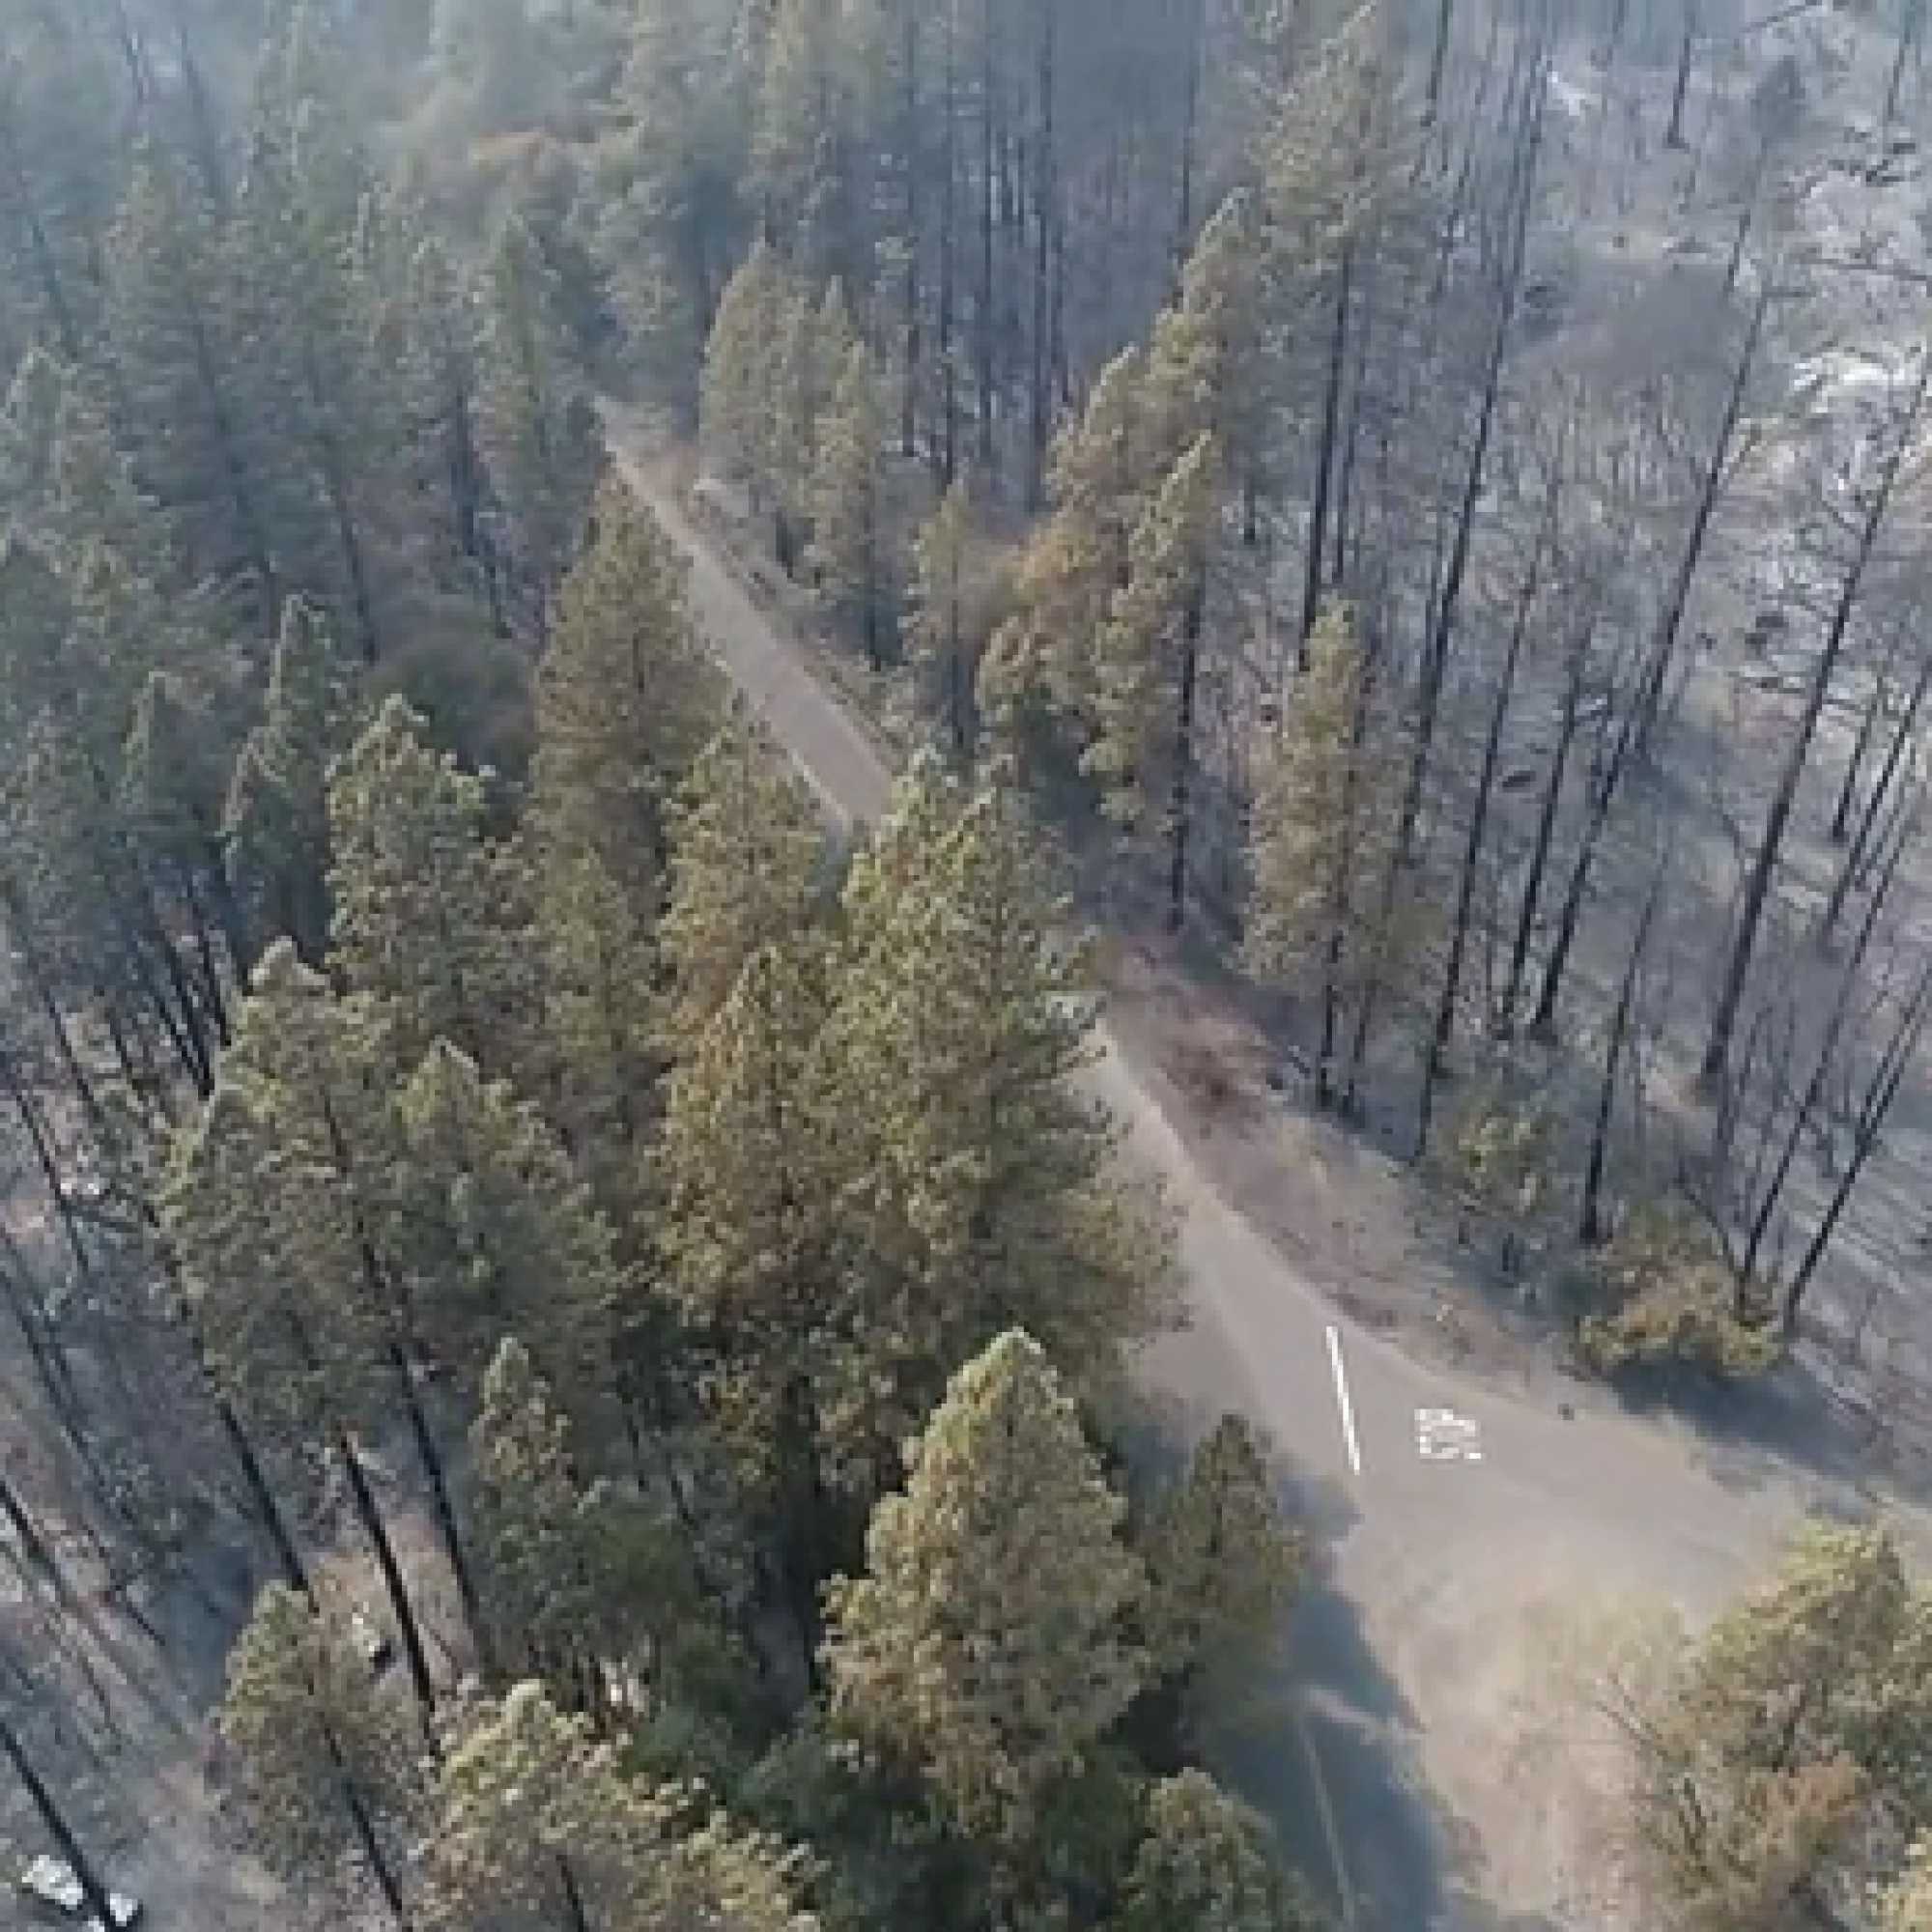 North Complex Fire: Drone Damage Assessment